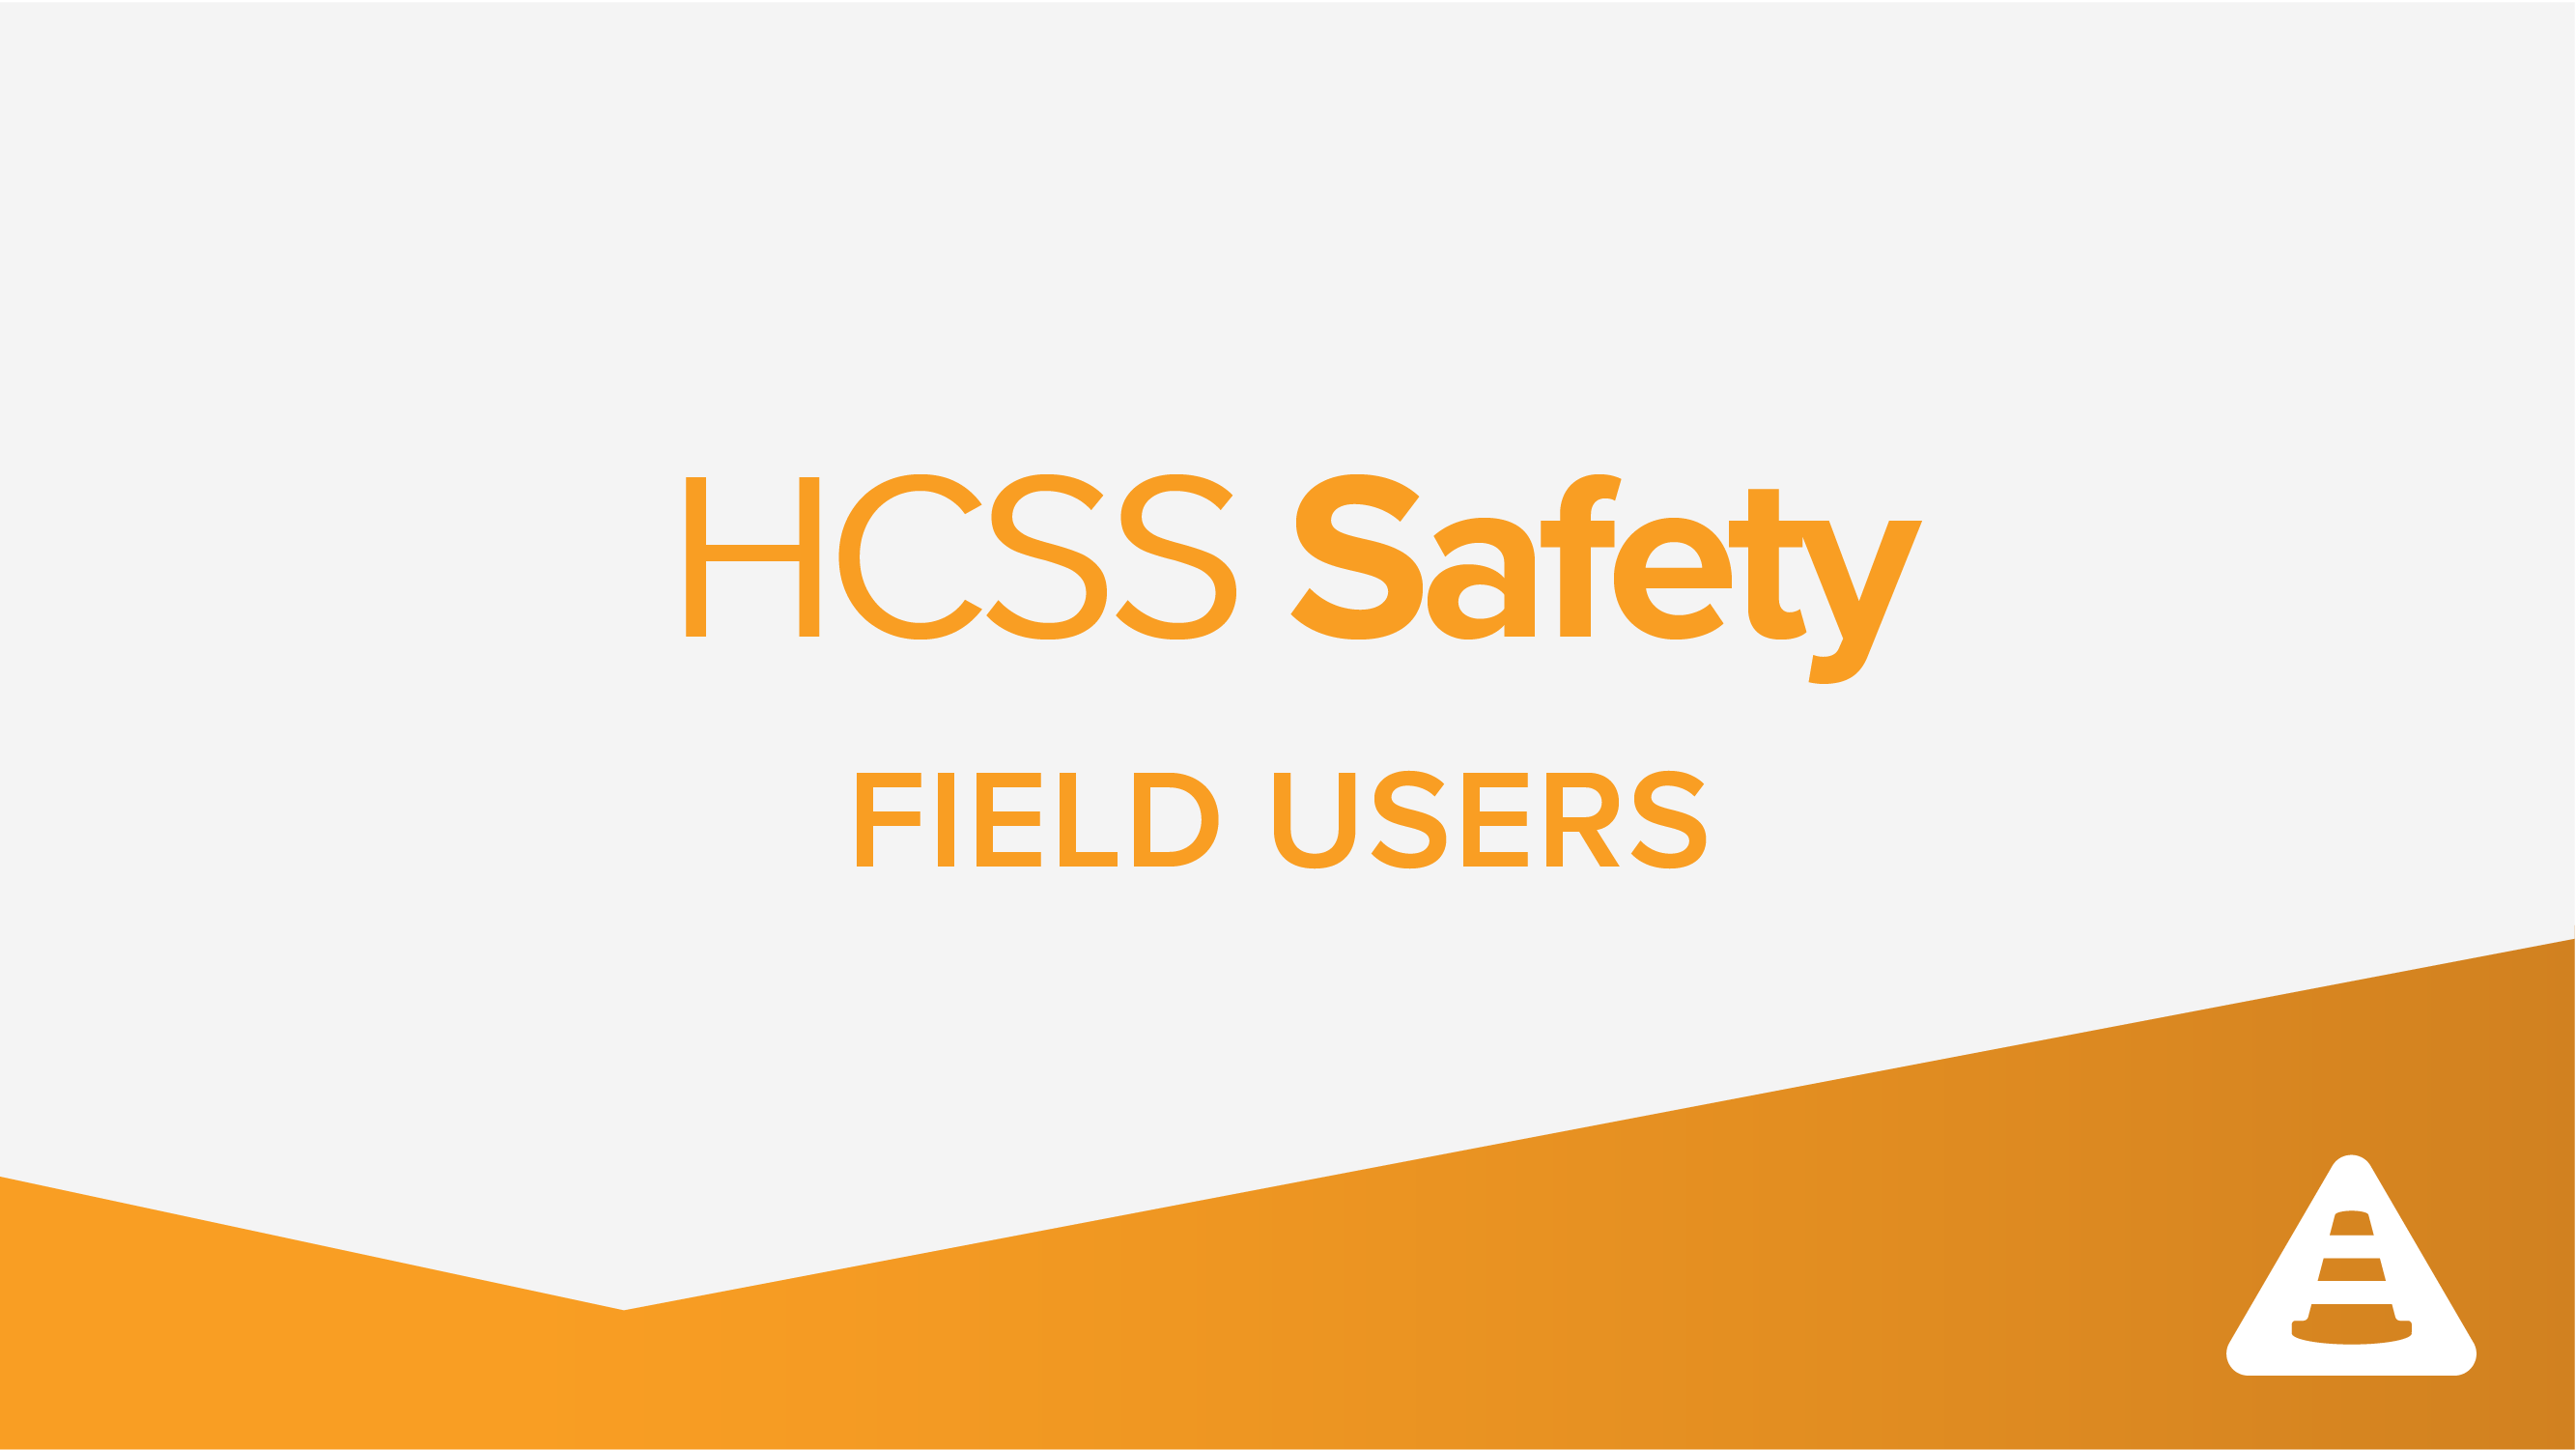 Capturing Safety Inspections Electronically